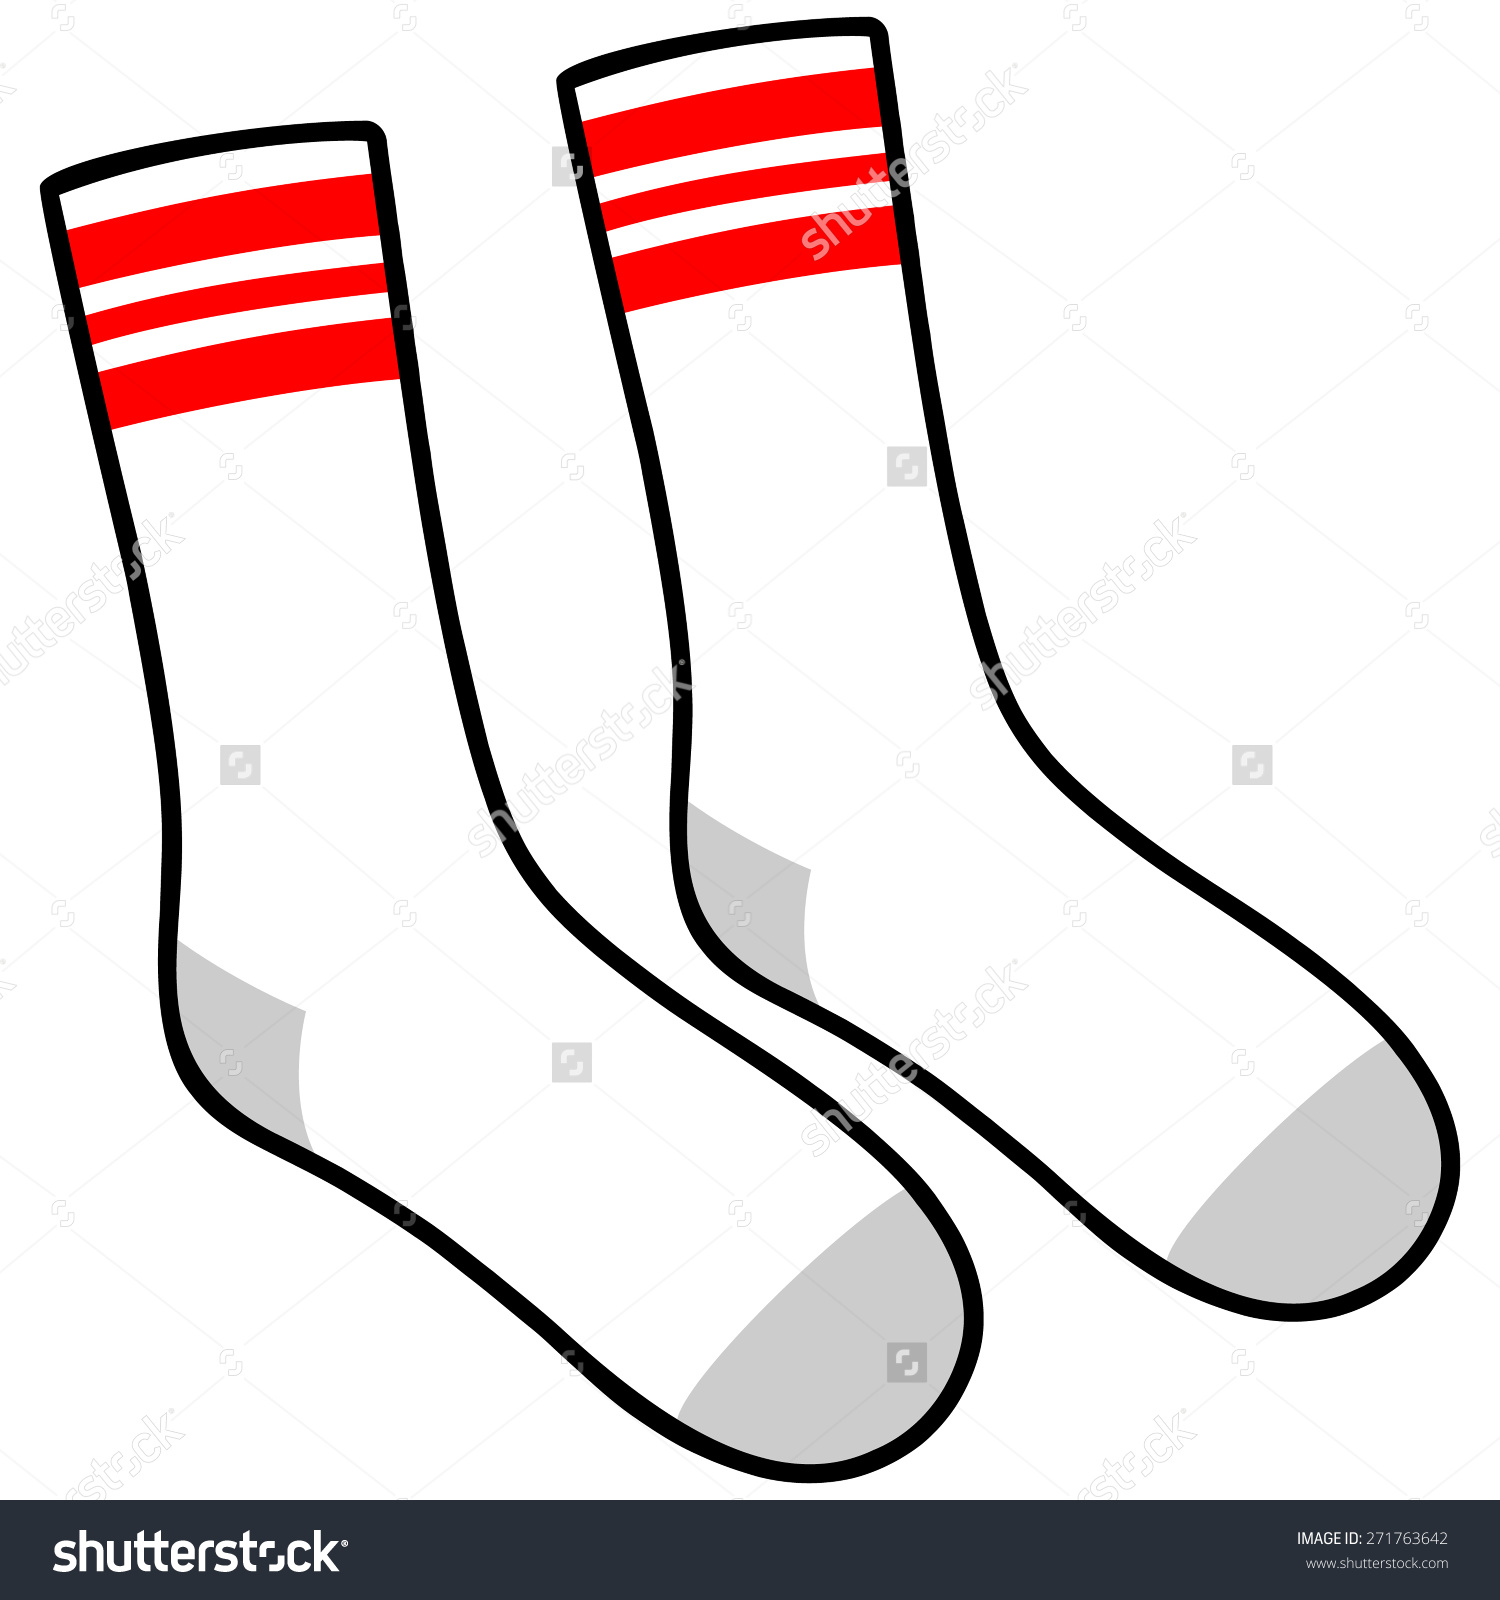 Tube Socks Stock Vector 271763642.